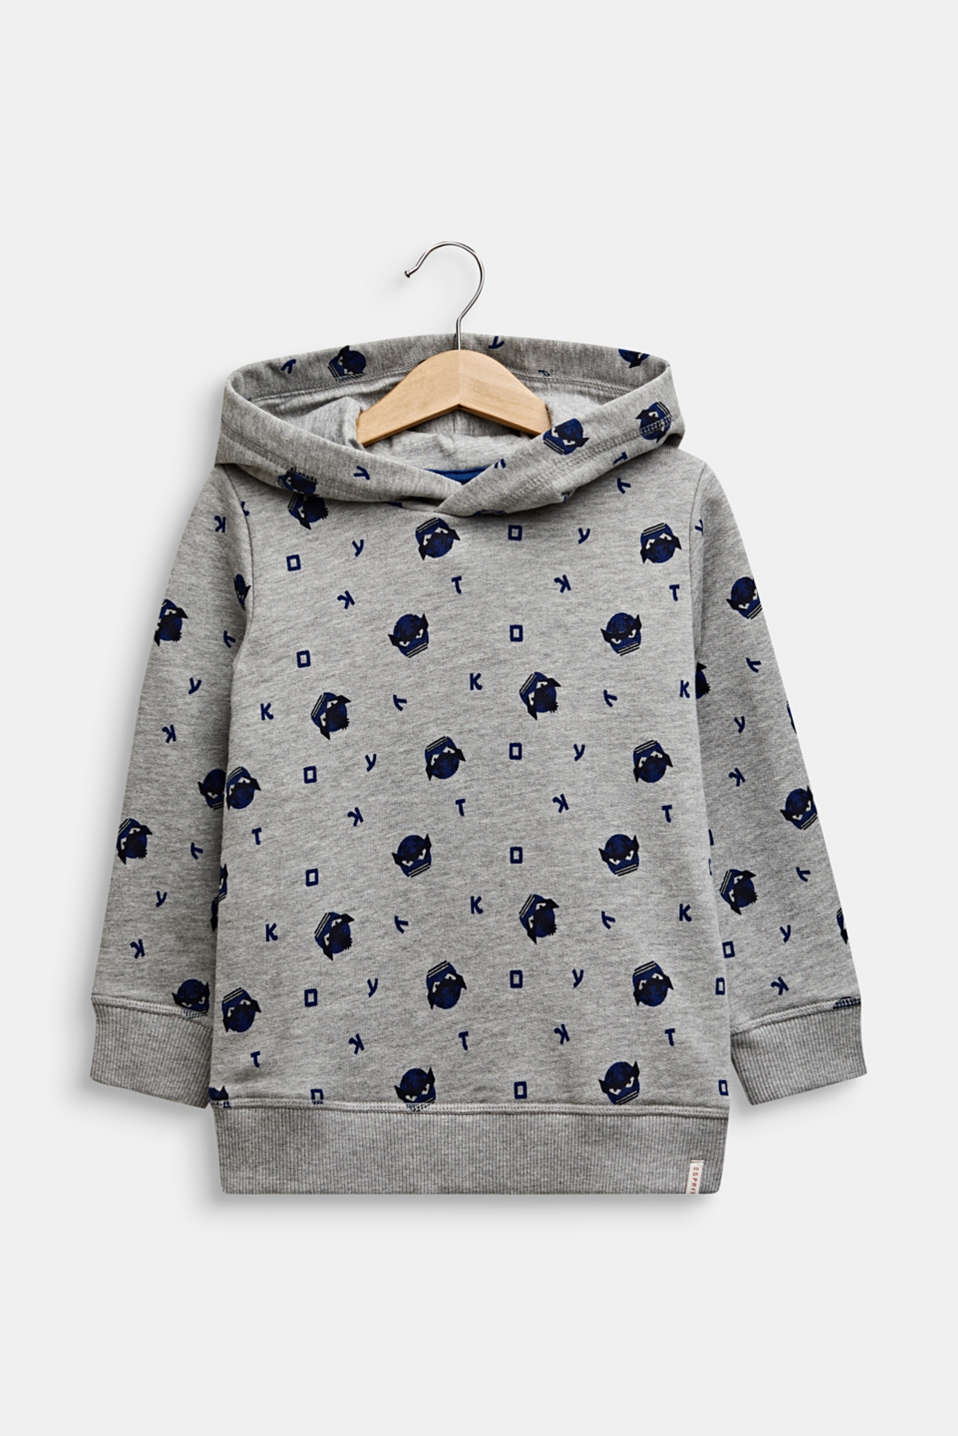 Esprit - Sweatshirt hoodie with an all-over print